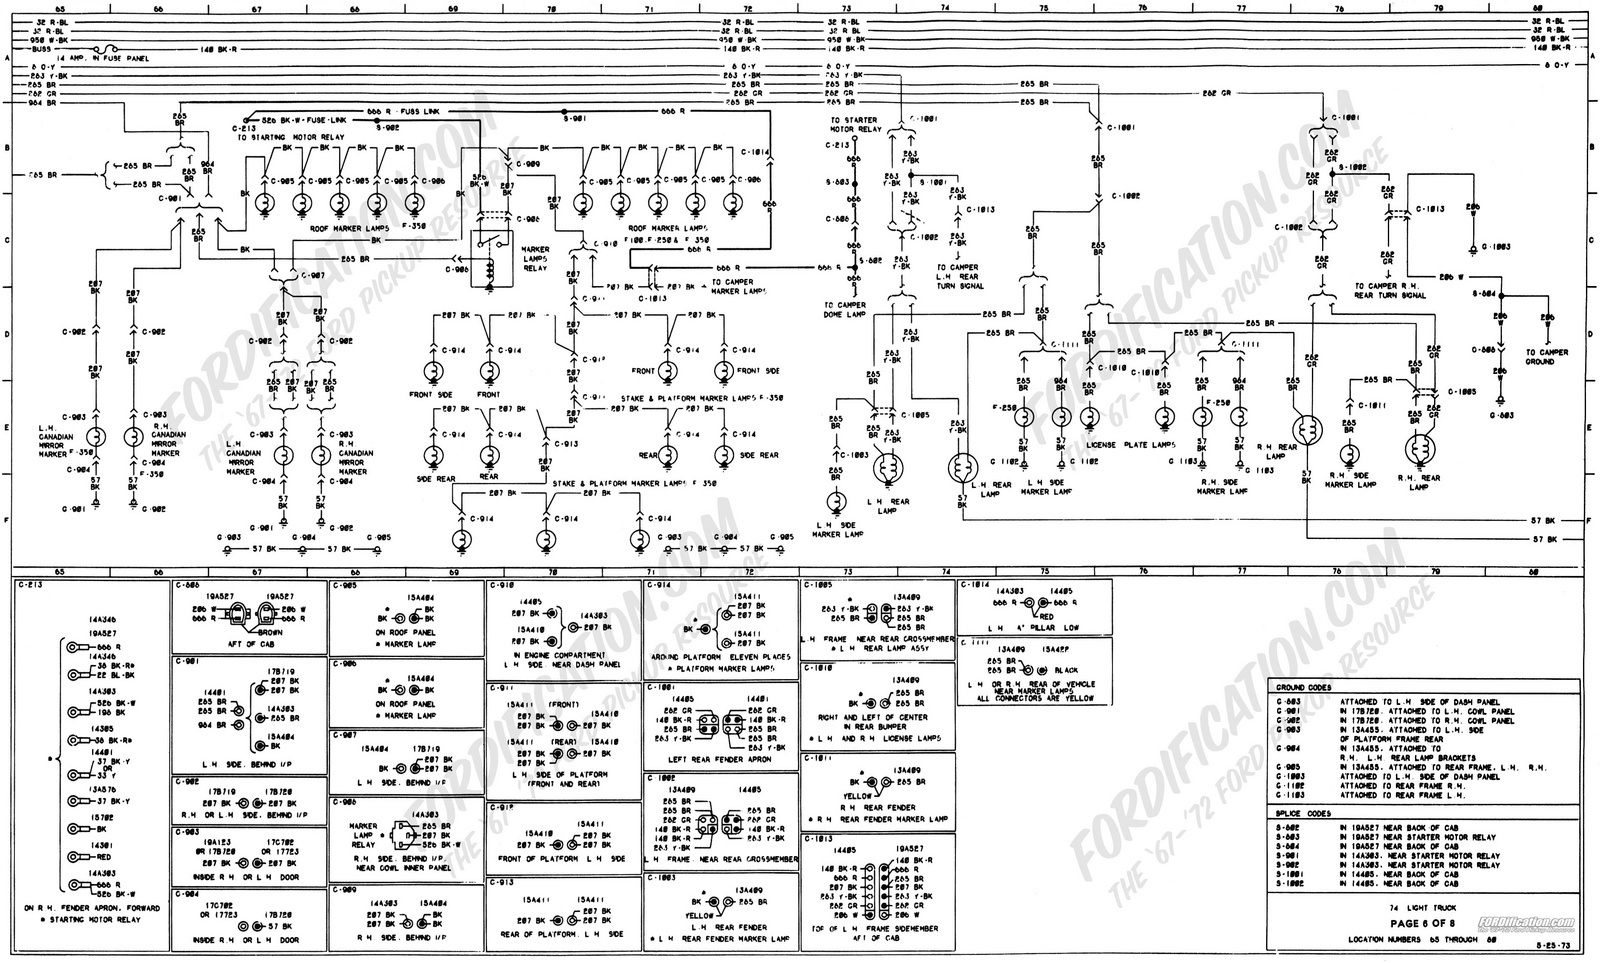 Ford Ranger Tail Light Wiring Diagram on ford ranger 2.9 wiring-diagram, ford super duty trailer wiring diagram, ford ranger tail light assembly, ford ranger tail light plug, ford brake switch diagram, rewiring a boat diagram, ford wiring harness diagrams, ford truck wiring diagrams, ford ranger tail light cover, ford ranger fuse diagram, ford brake light wiring diagram, 2002 ford explorer power window wiring diagram, ranger boat livewell diagram, century boats lights diagram, ford trailer plug wiring diagram, ford ranger tail light connectors, ford econoline e350 fuse diagram for 2009, ford f-350 wiring diagram, ford ranger turn signal diagram, ford ranger trailer wiring harness,